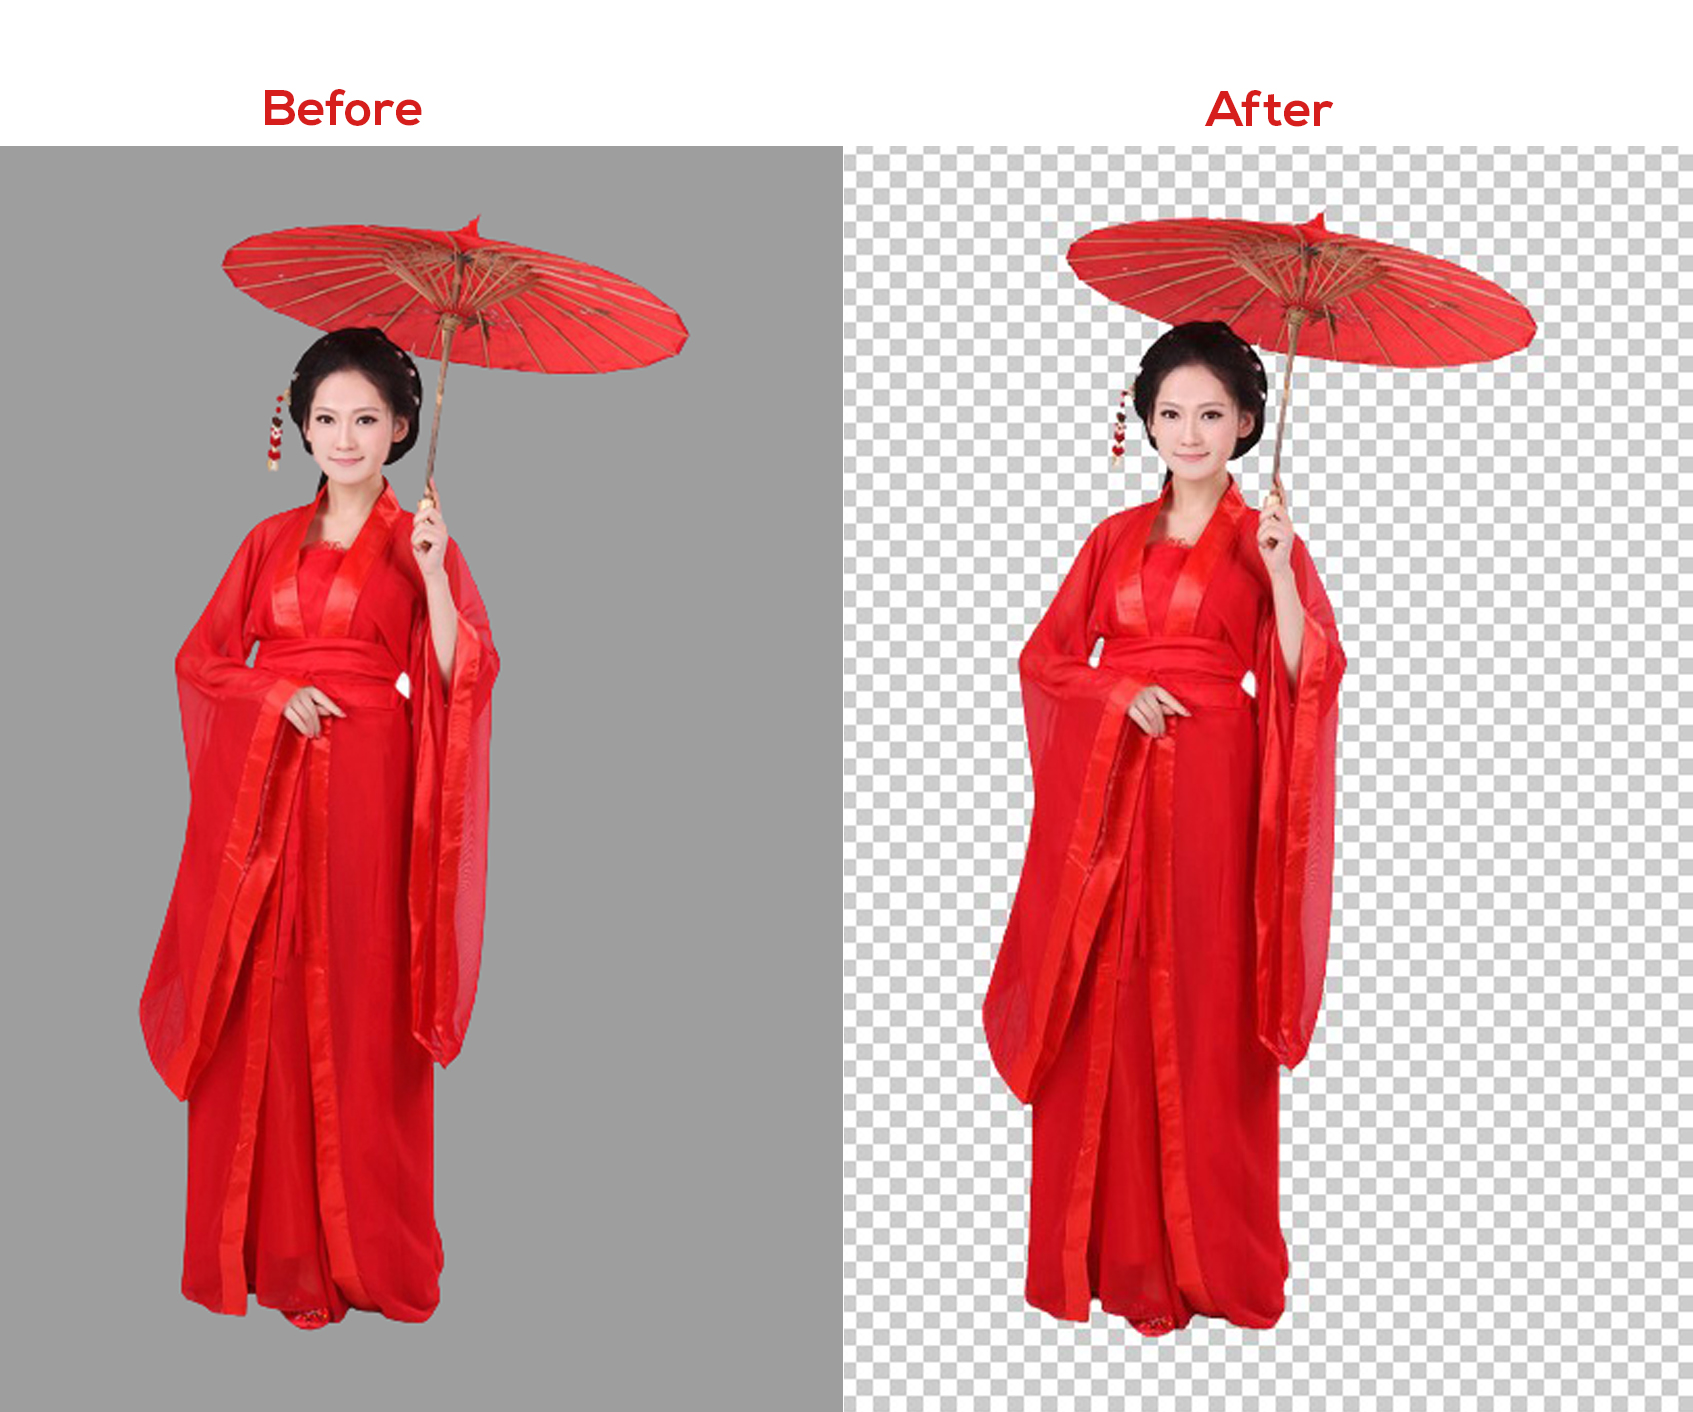 I will do professional background removal,  image resize and color change